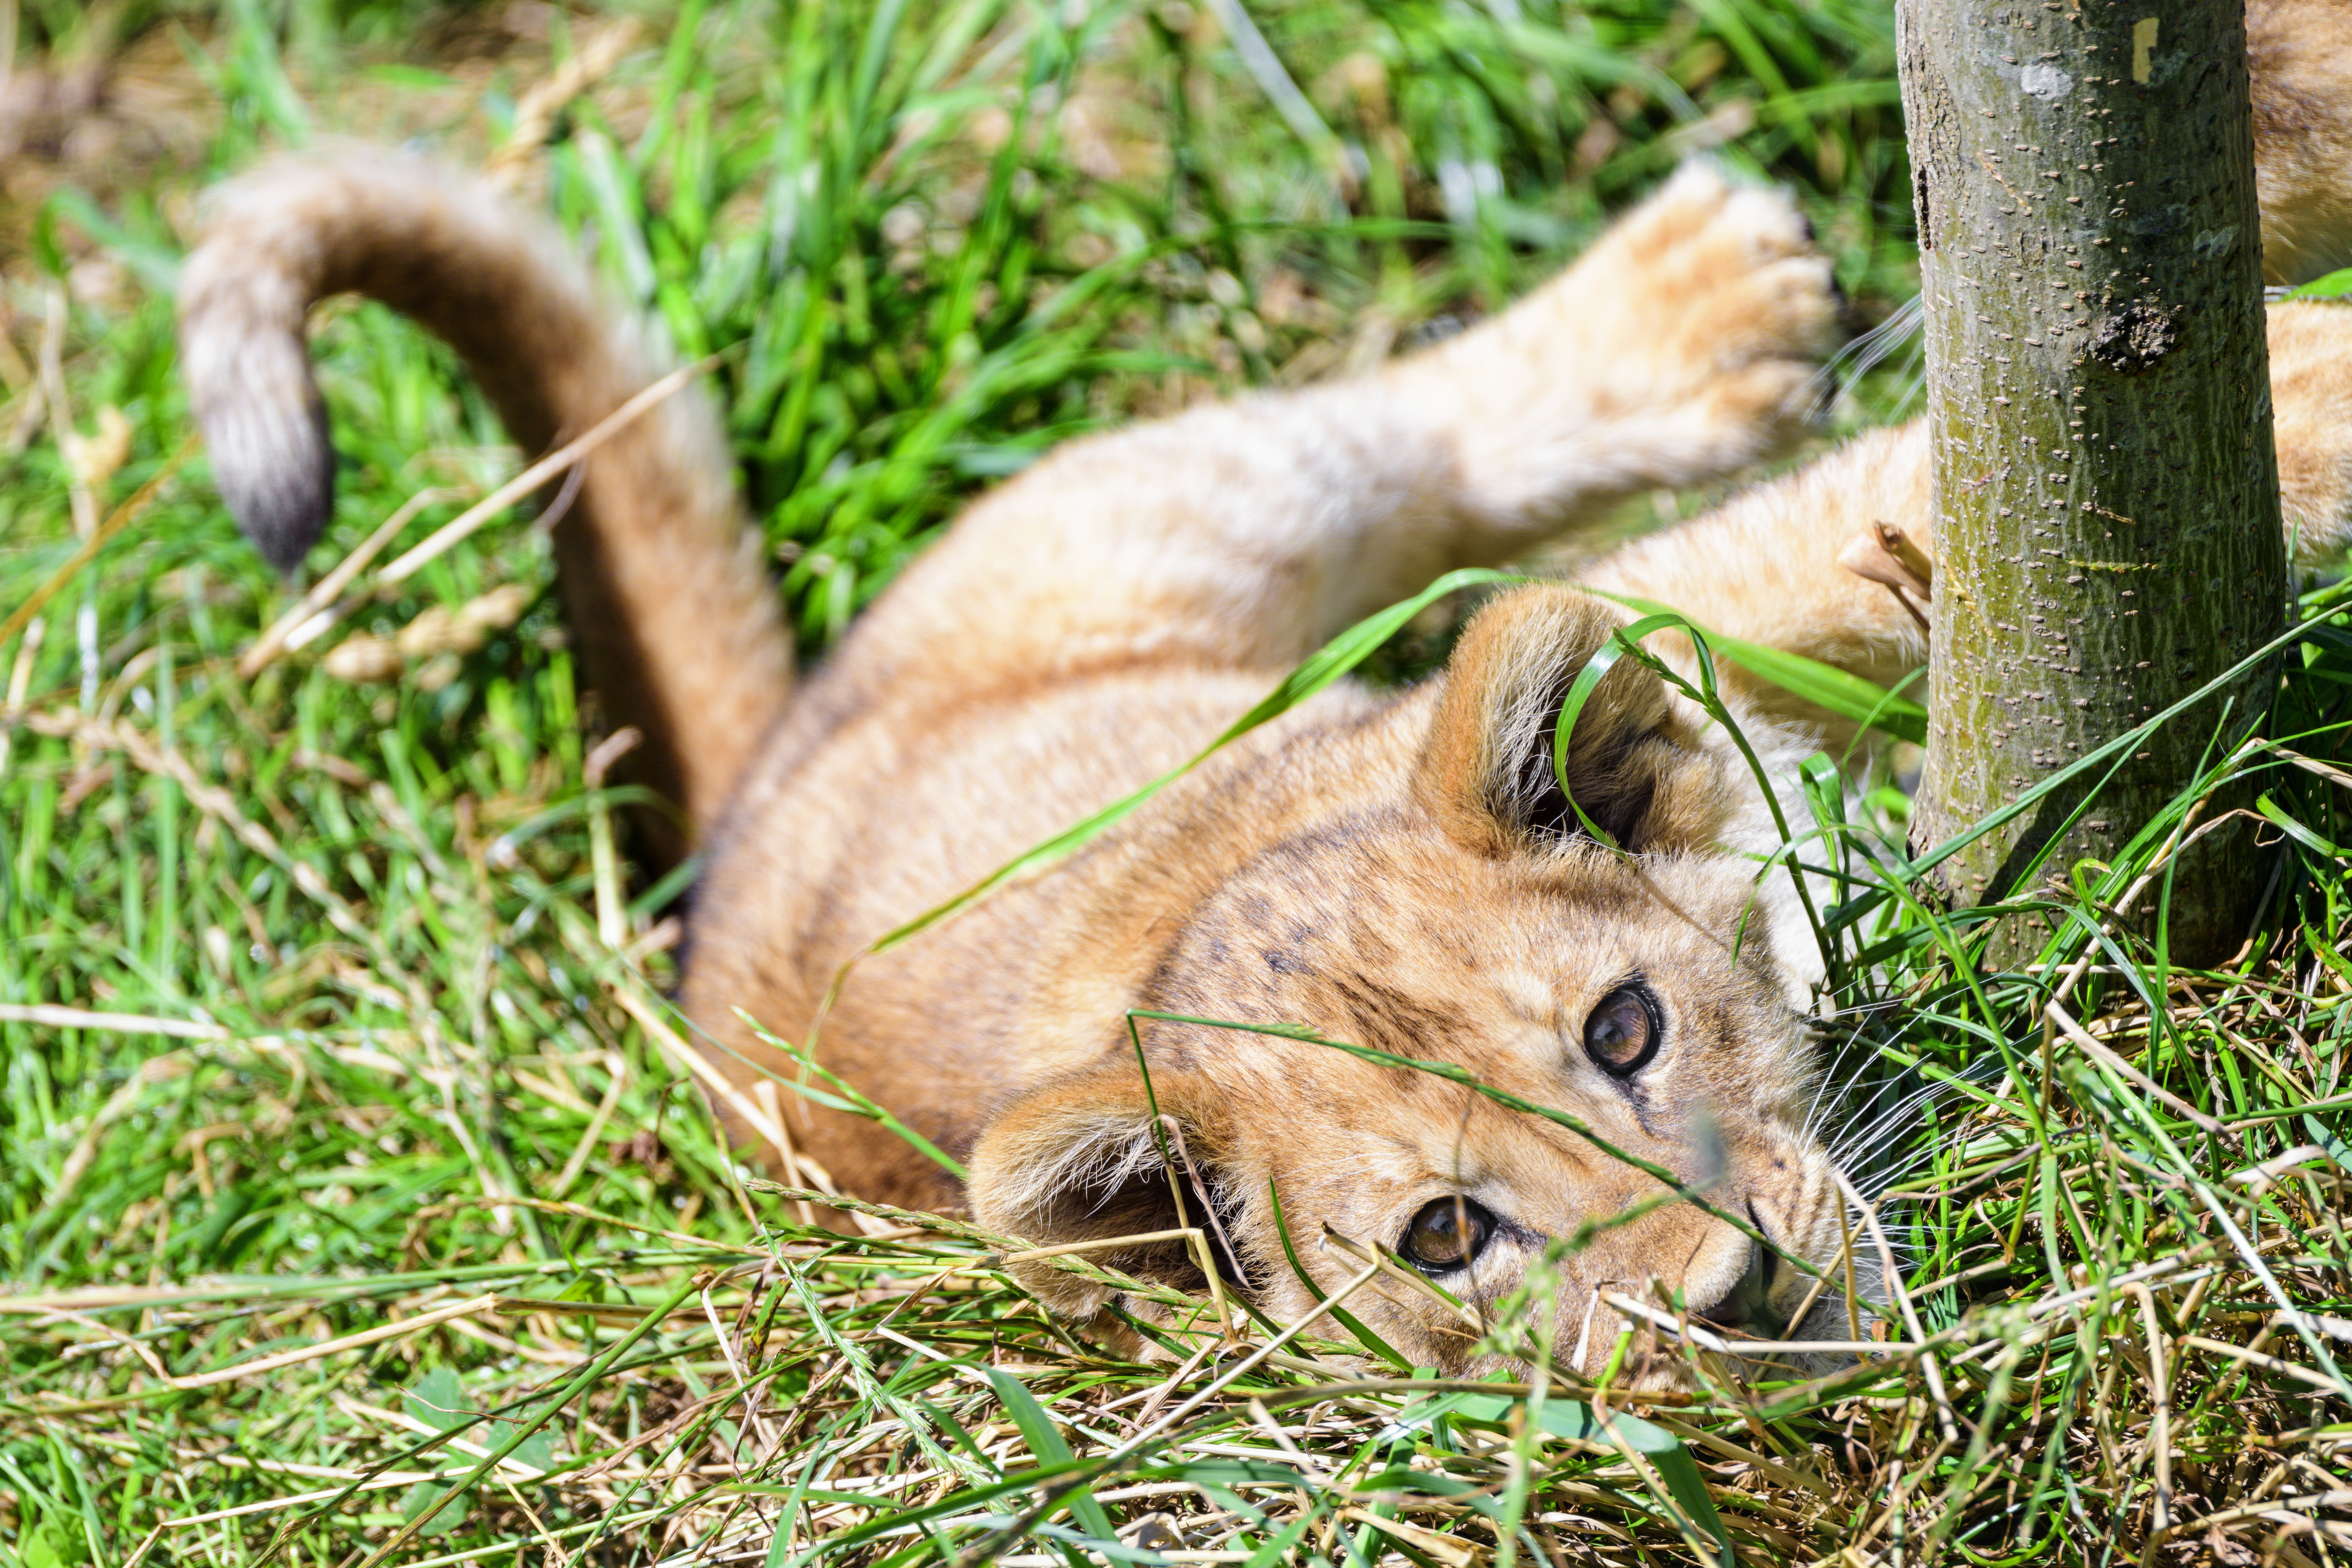 122548 download wallpaper Animals, Lion Cub, Lion, Young, Joey, Nice, Sweetheart, Grass screensavers and pictures for free